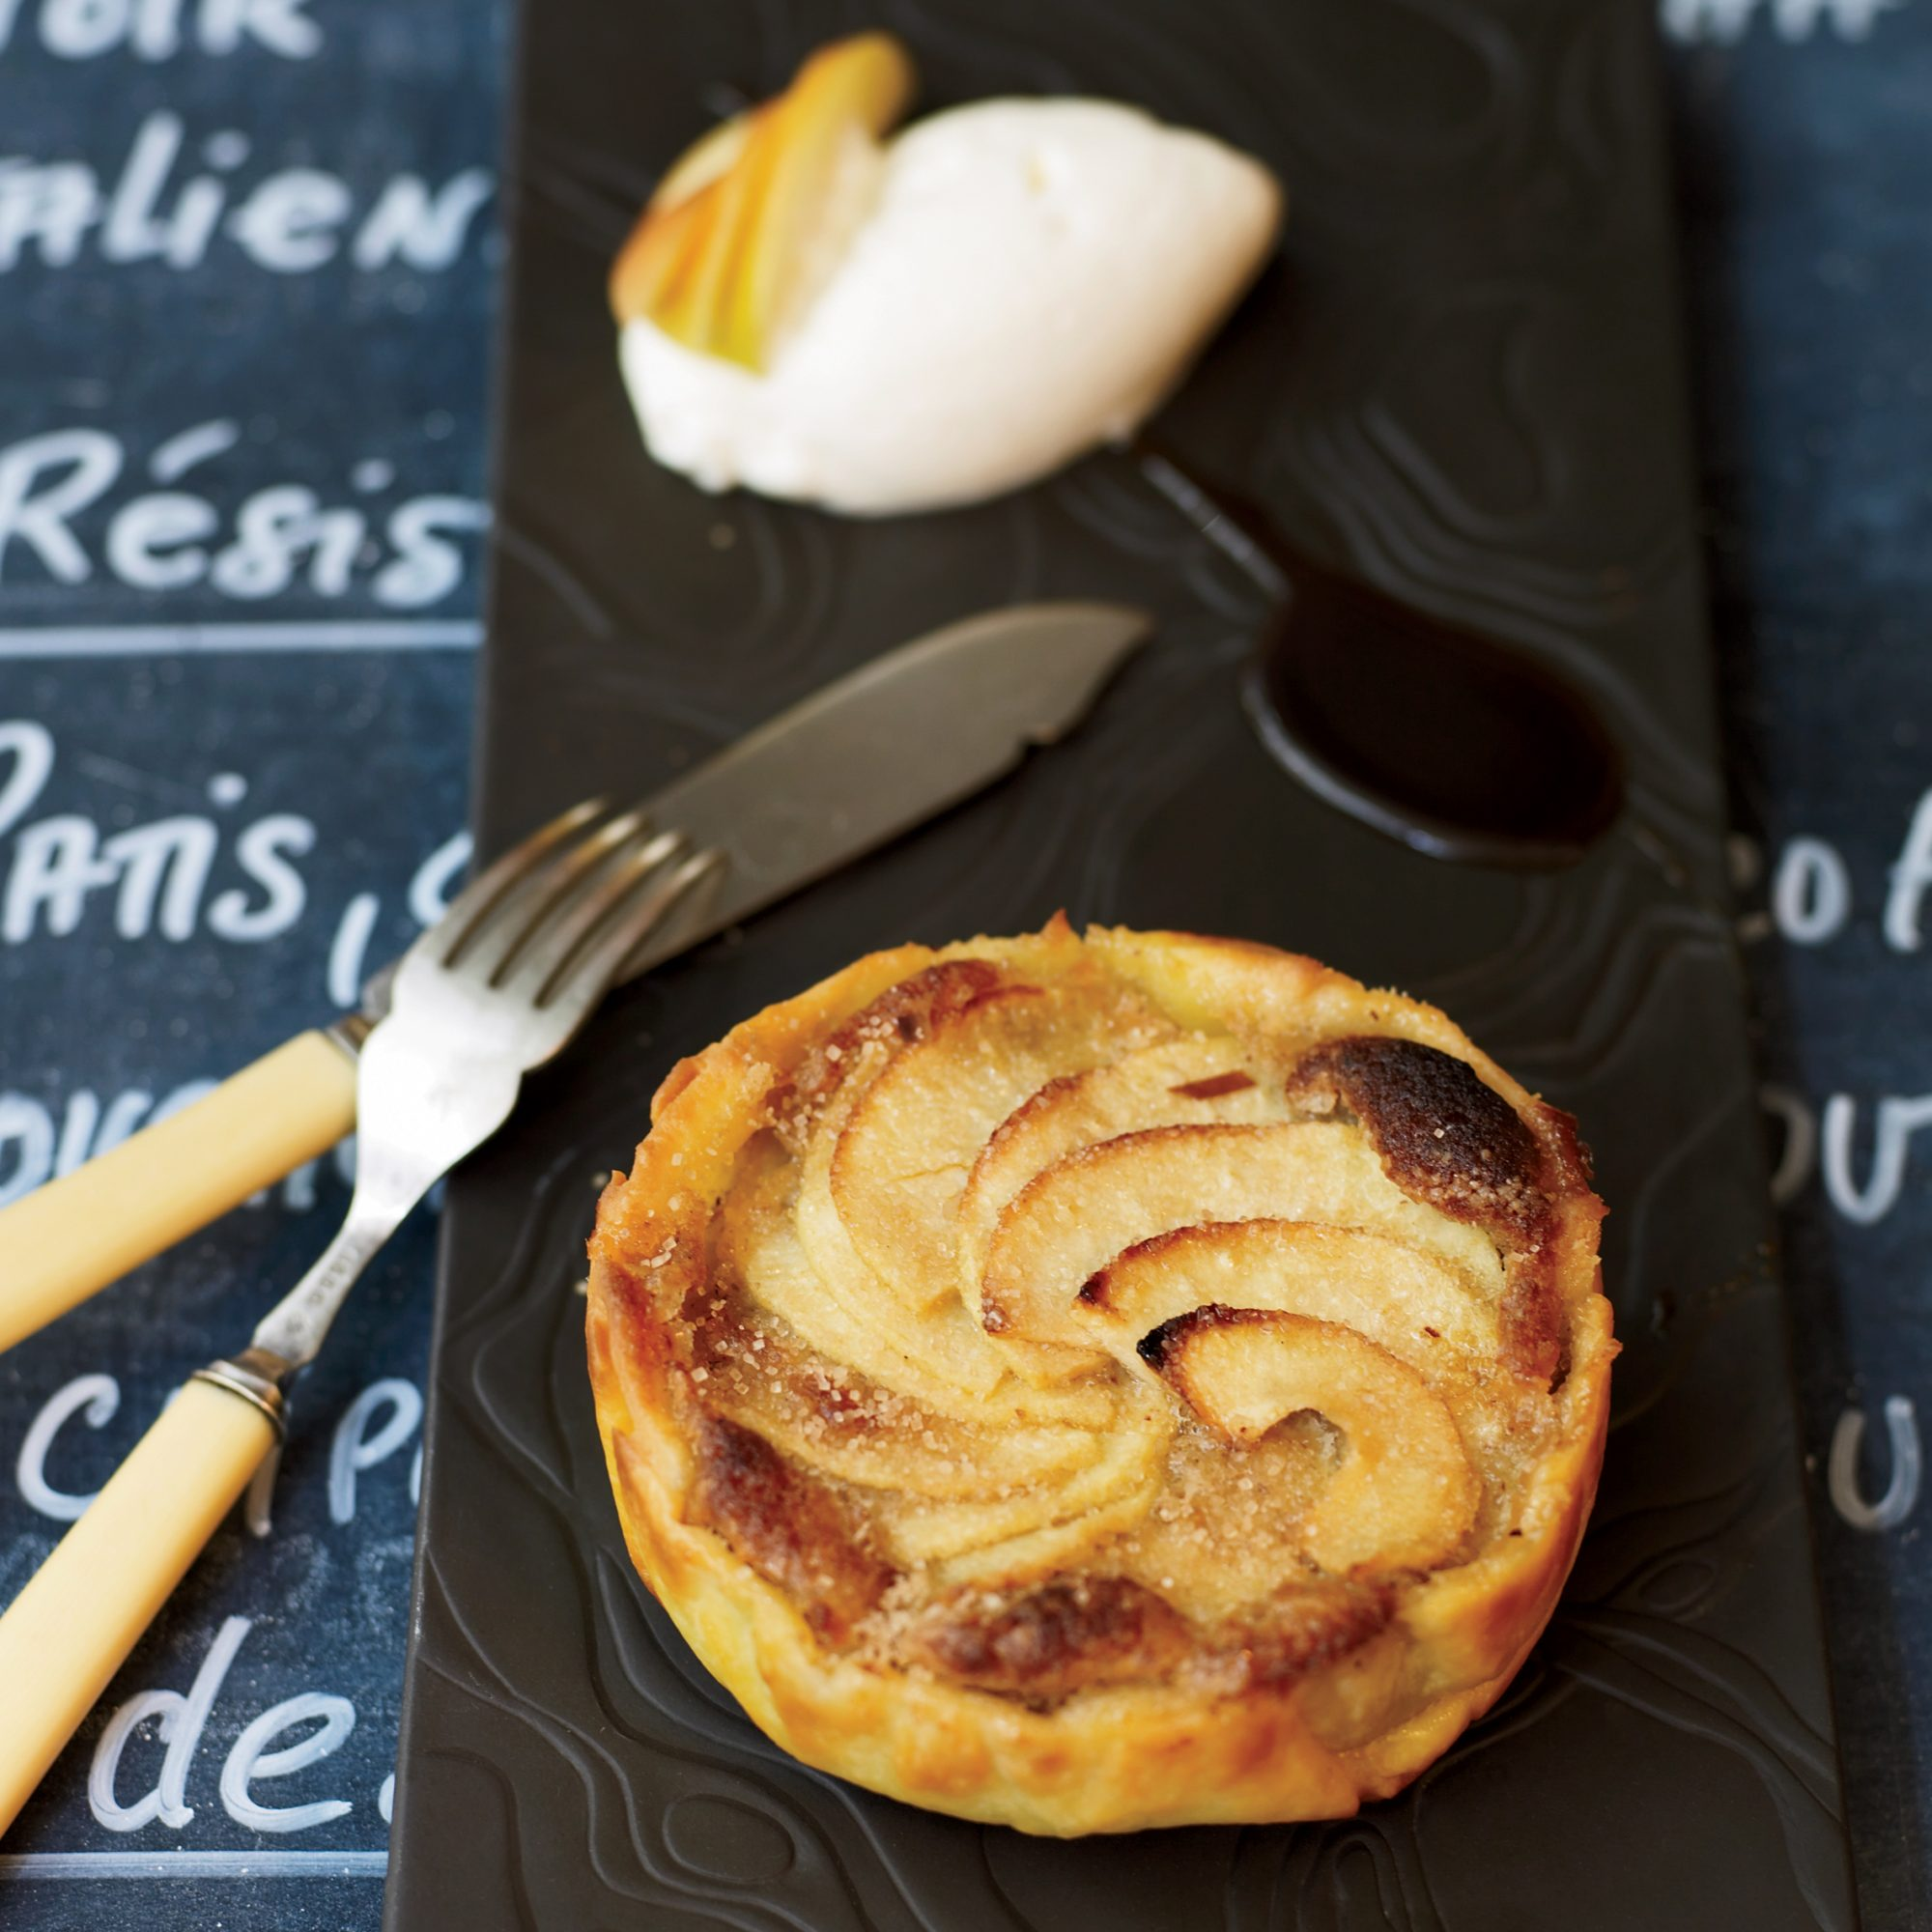 200810-r-apple-tart-almond.jpg